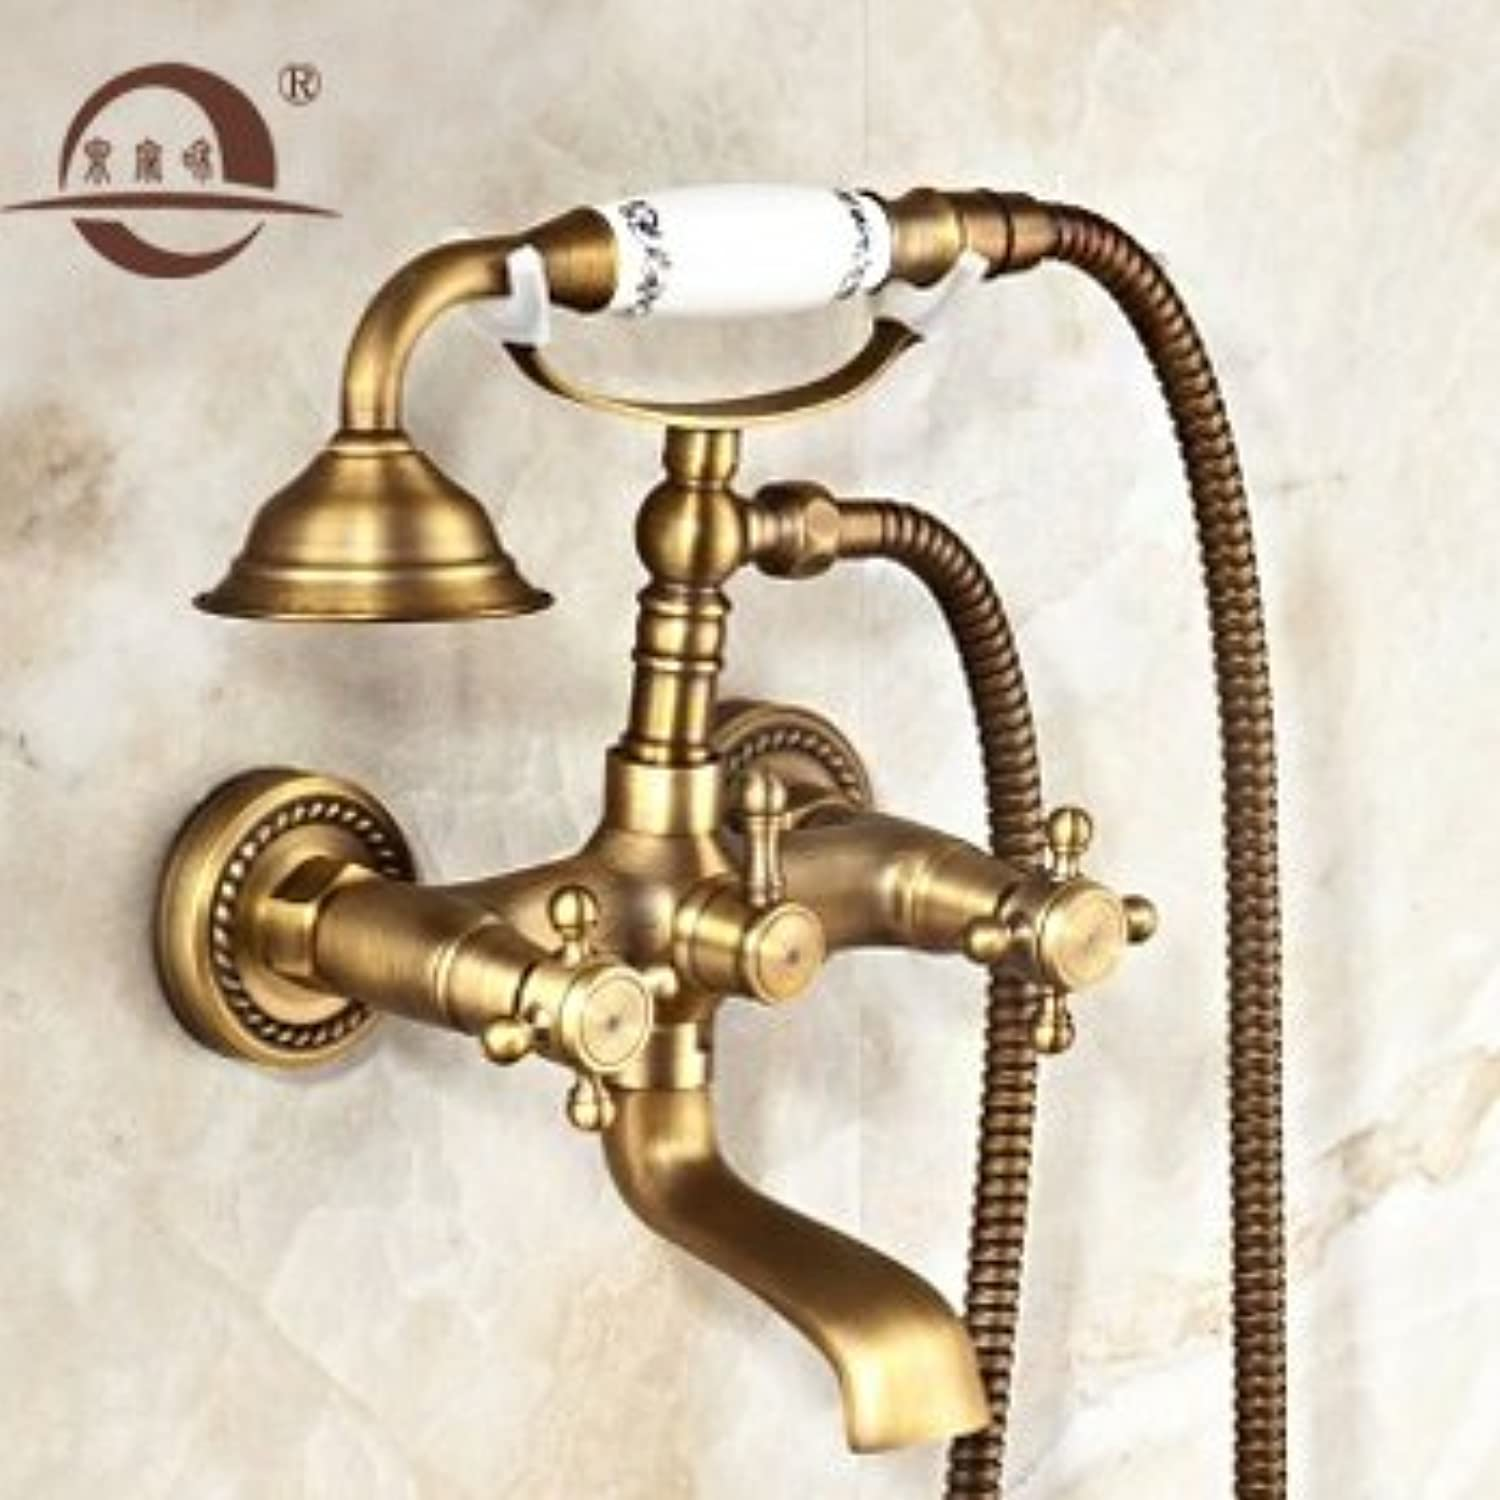 NewBorn Faucet Kitchen Or Bathroom Sink Mixer Tap Antique Easy Shower Full Copper Booster Sprinklers Set Three S, Hot And Cold Bath Water Tap Shower Water Tap Single